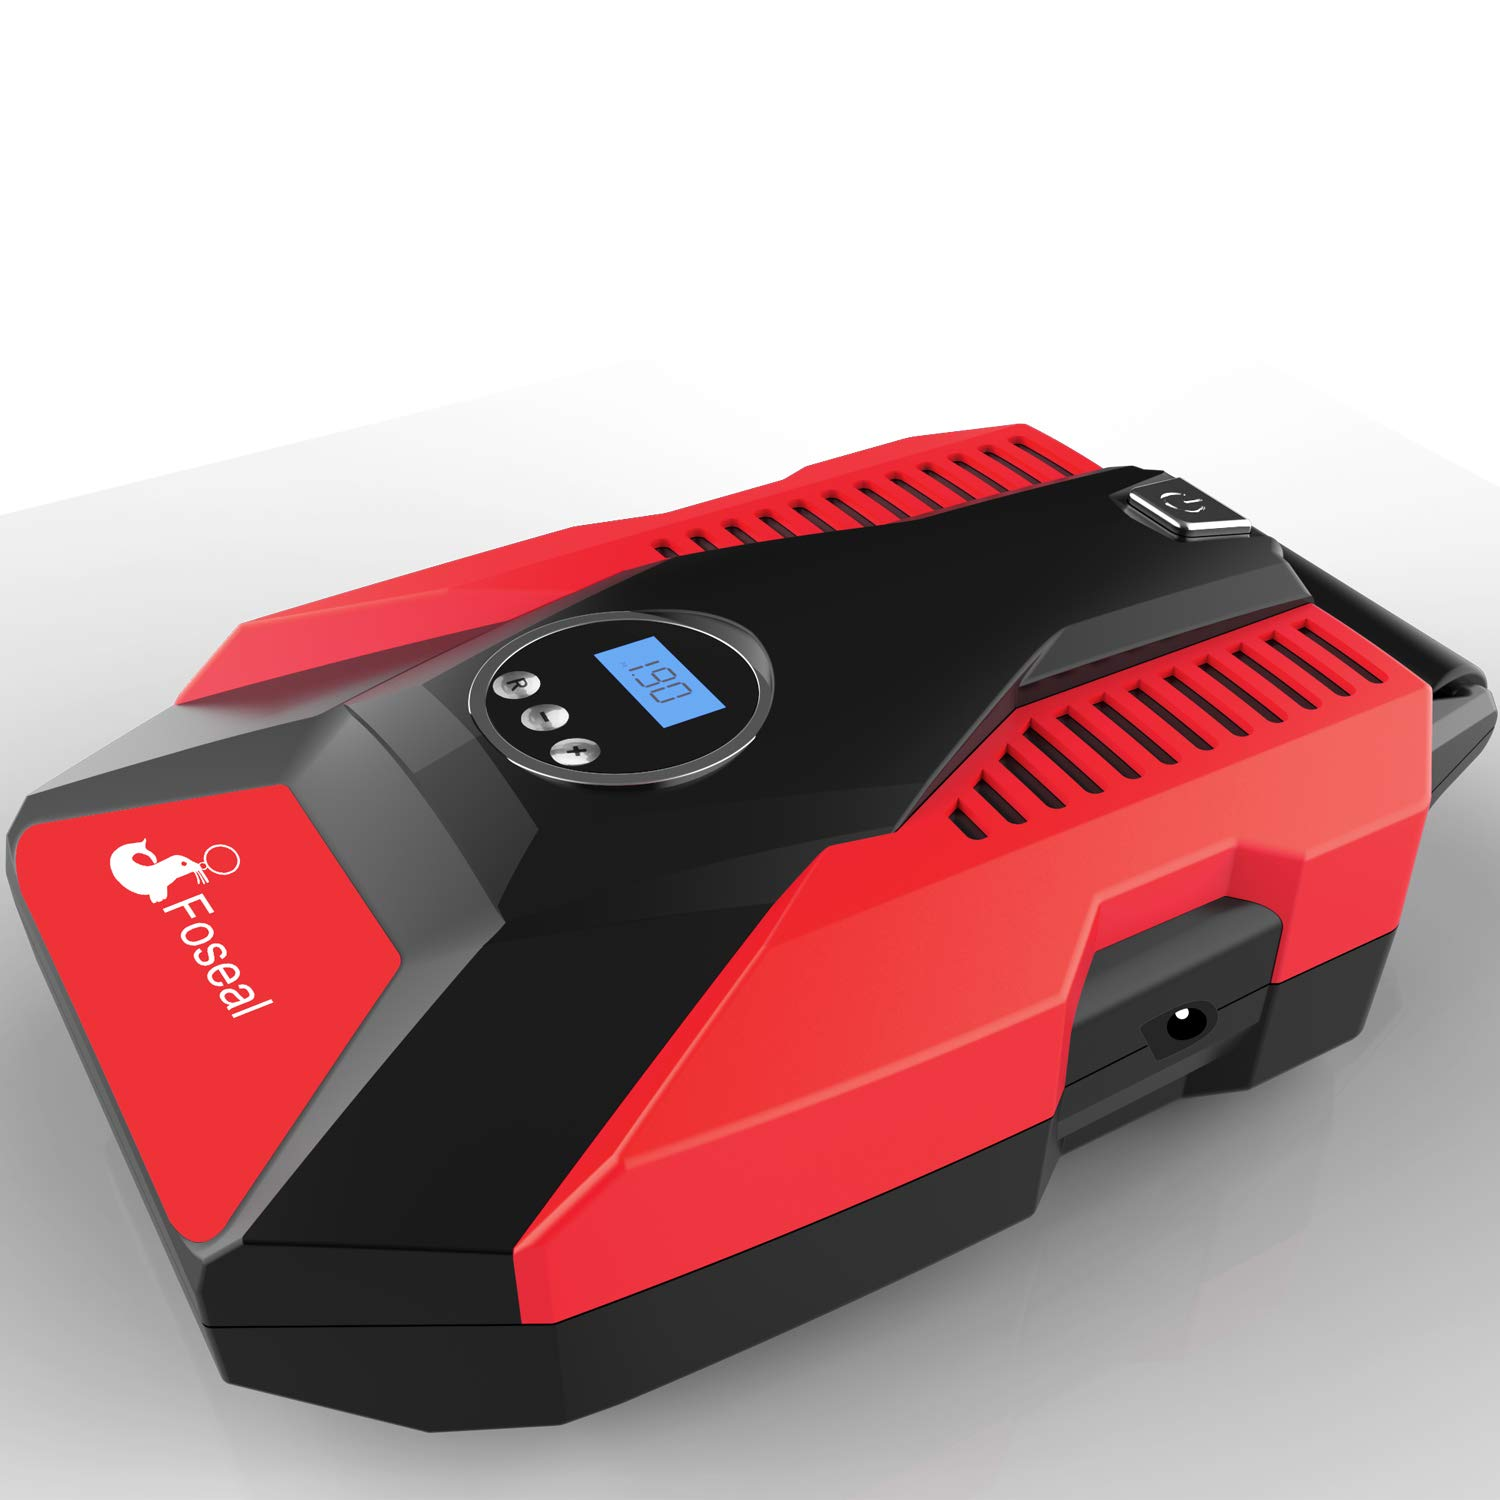 Foseal 1 Red Portable Air Compressor, 12V DC Digital Inflator 150 PSI Auto Shut-Off Easy to Use Pump with Emergency Led Light and Long Cable for Car Motorcycle Bicycle/Schrader Tires Ball by Foseal (Image #9)